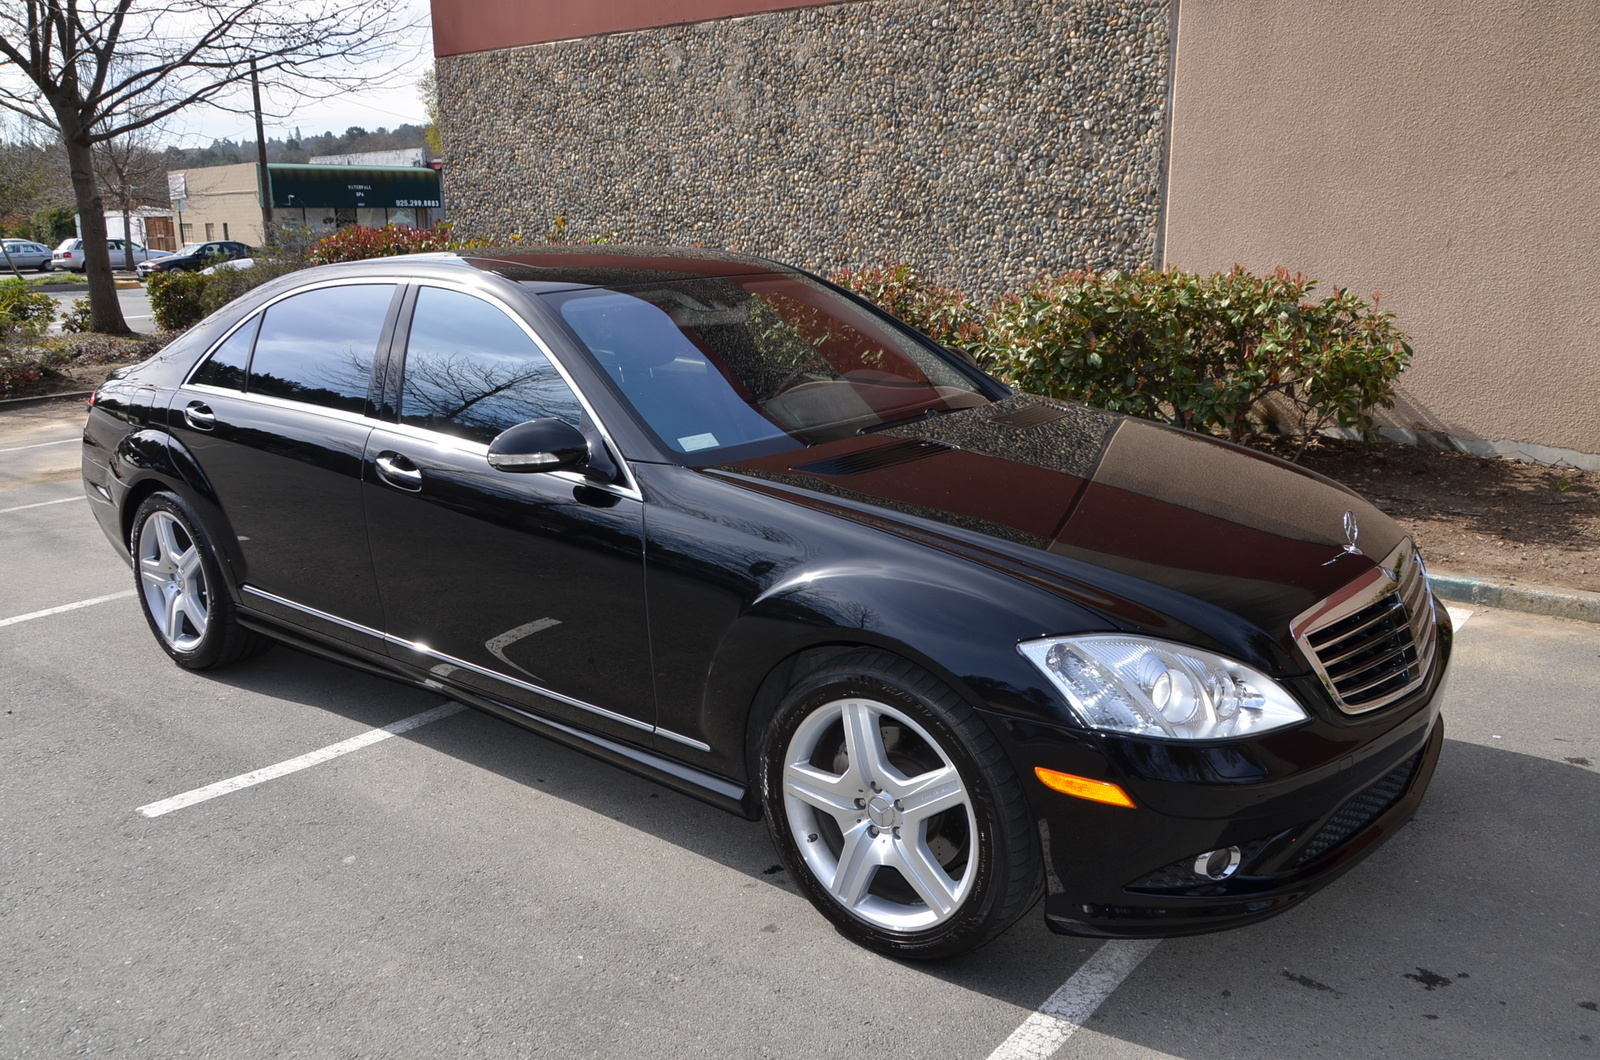 2007 mercedes benz s class pictures cargurus for 2008 mercedes benz s550 4matic price